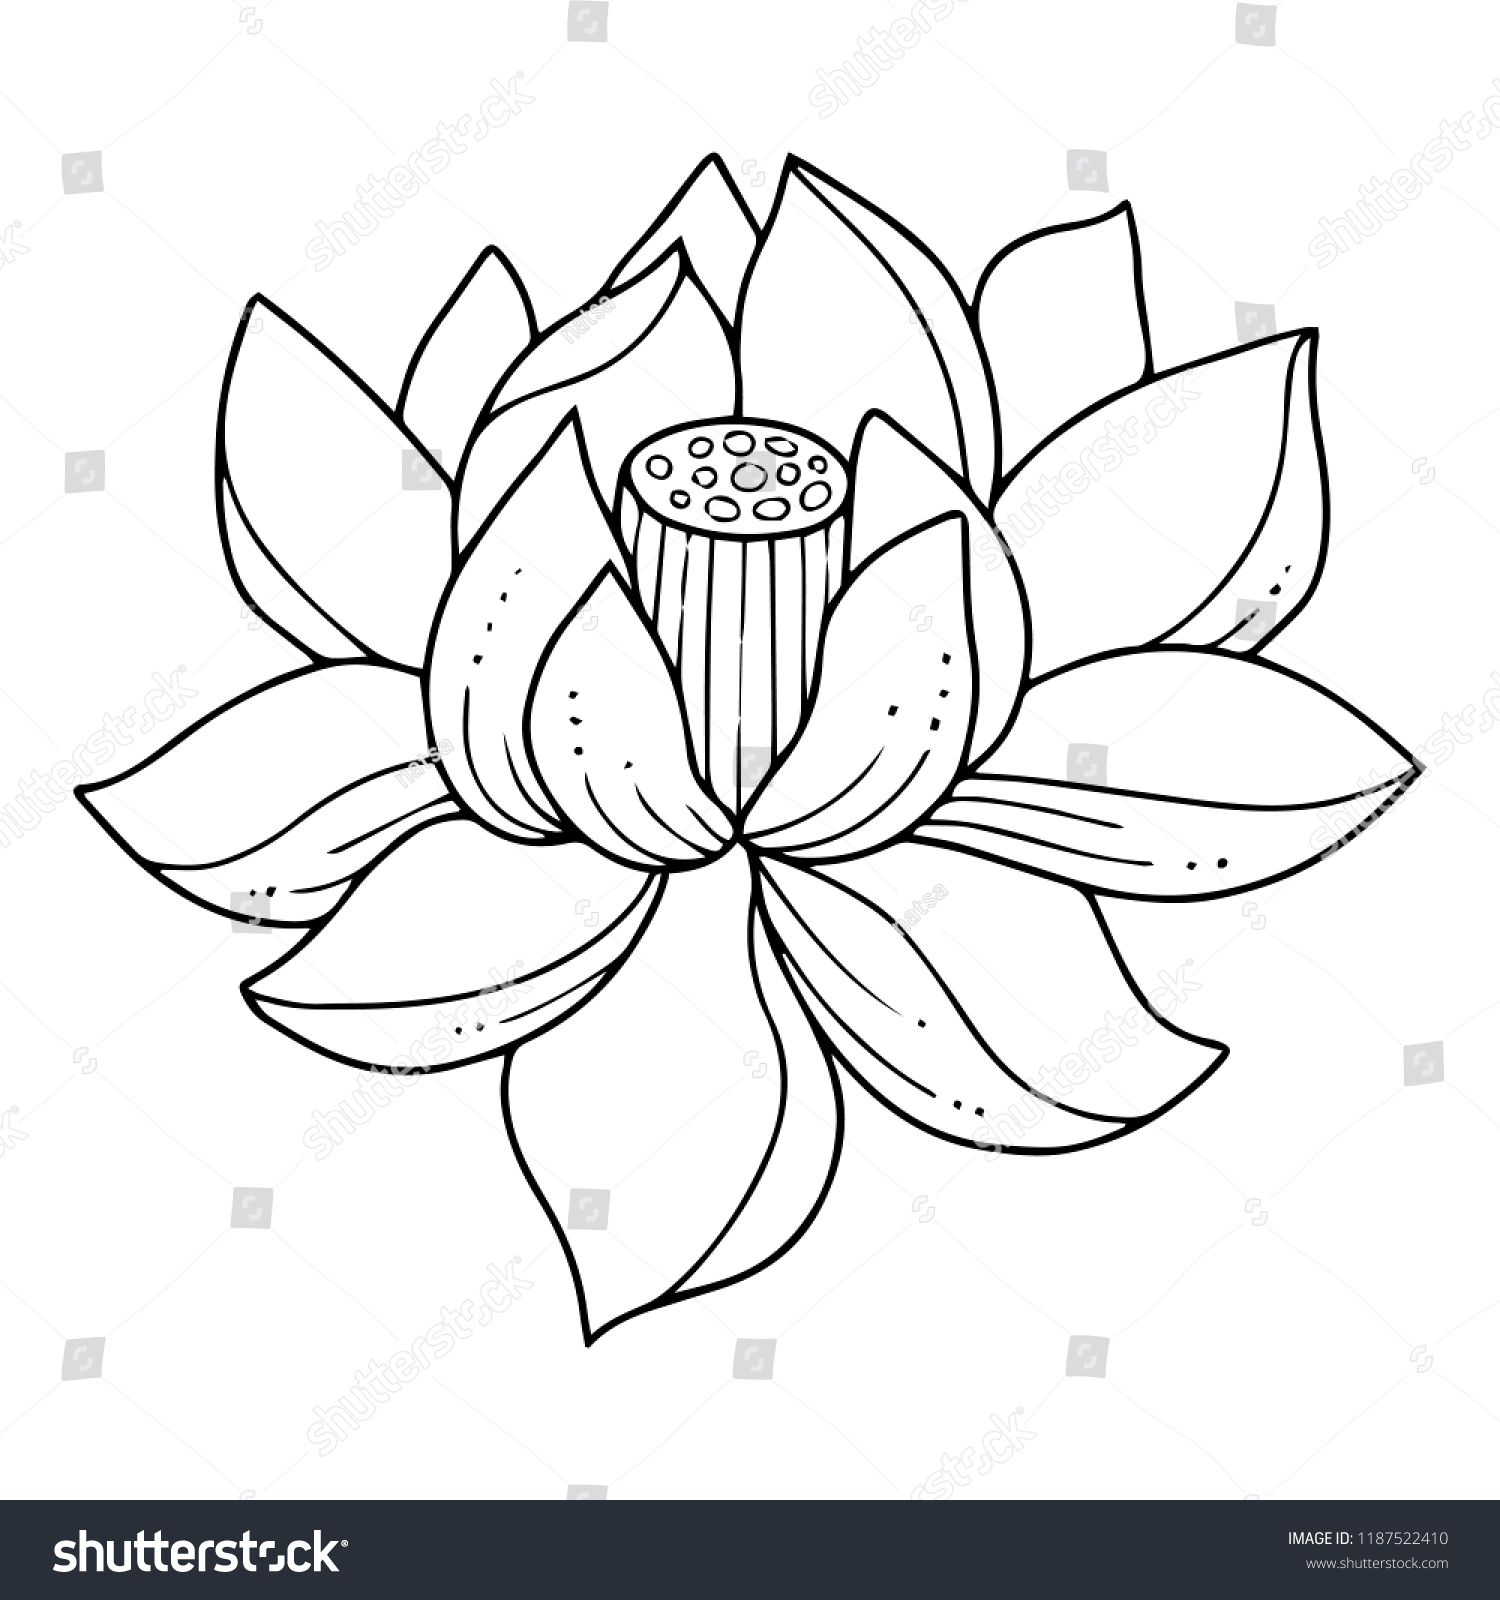 Water Lily Flower Outline Topsimages